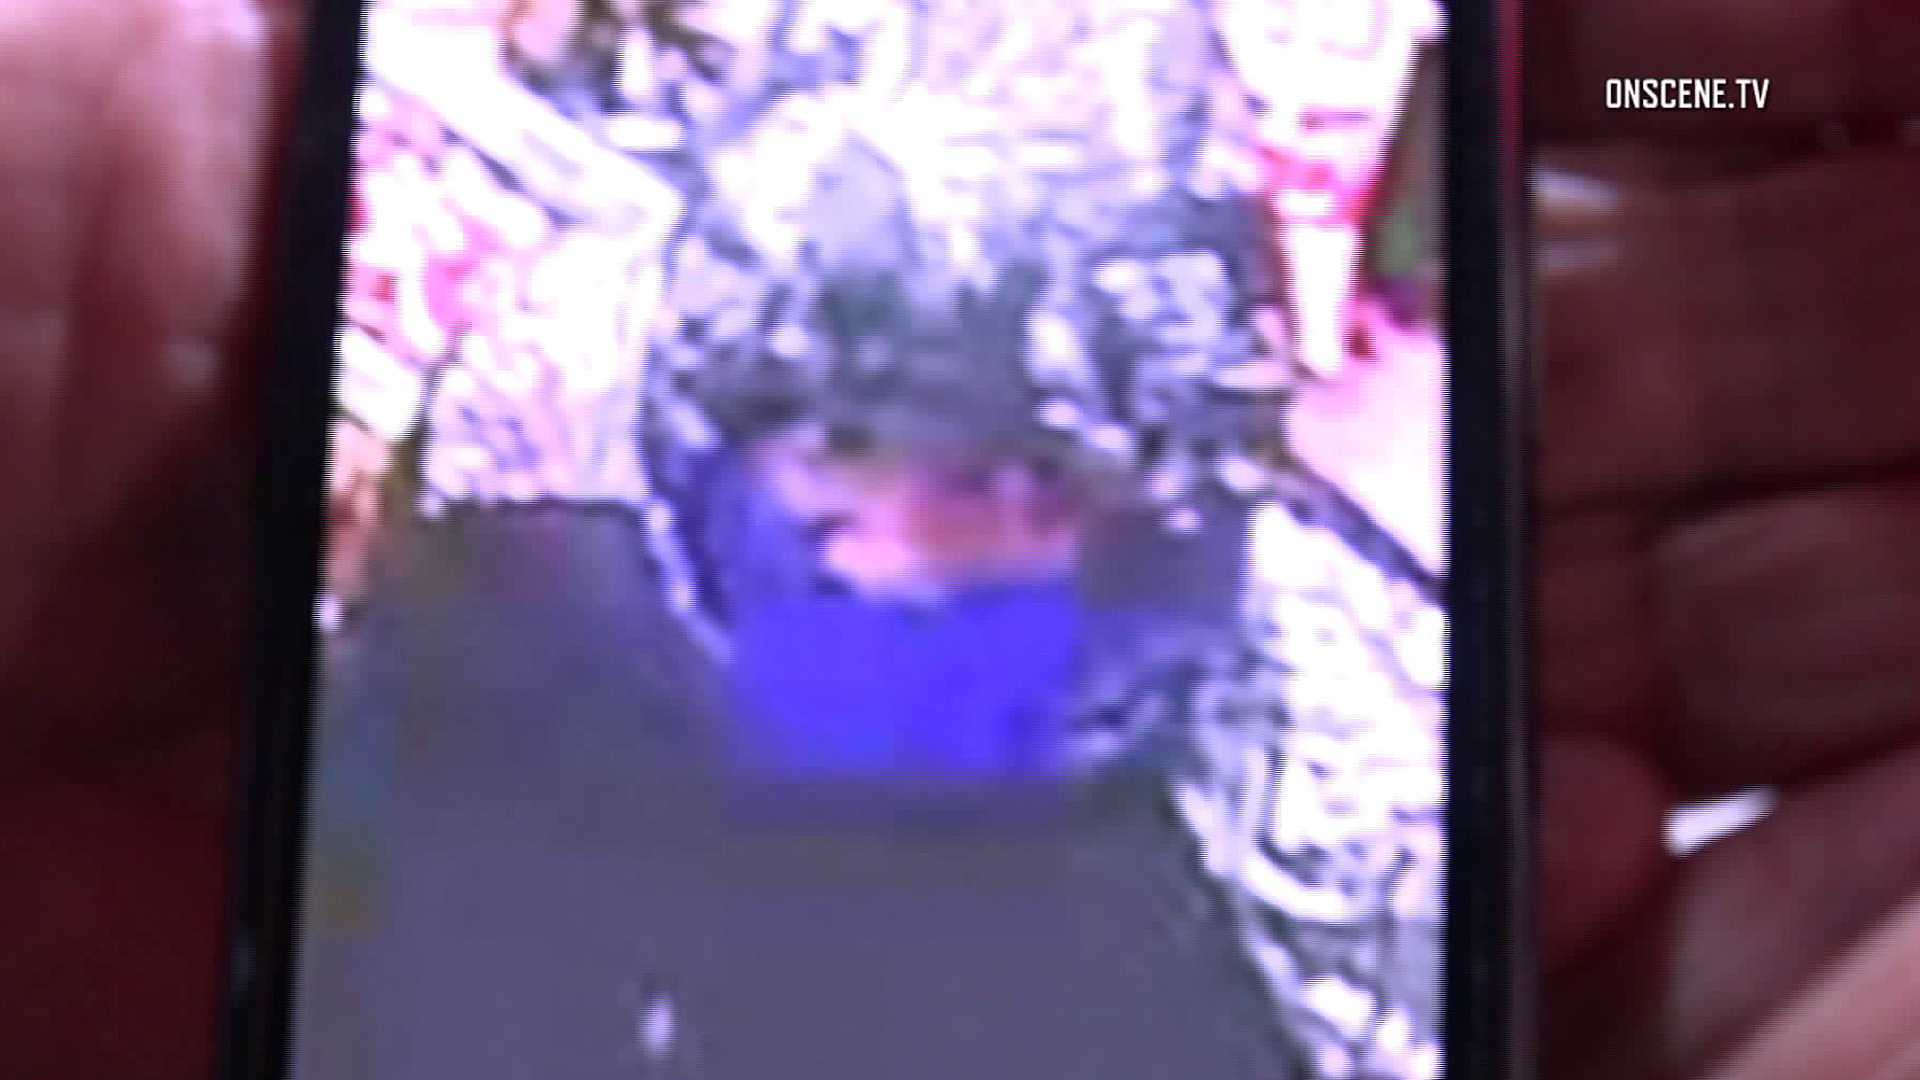 An armed robber at a Cypress 7-Eleven is seen in a surveillance image provided on April 25, 2018.